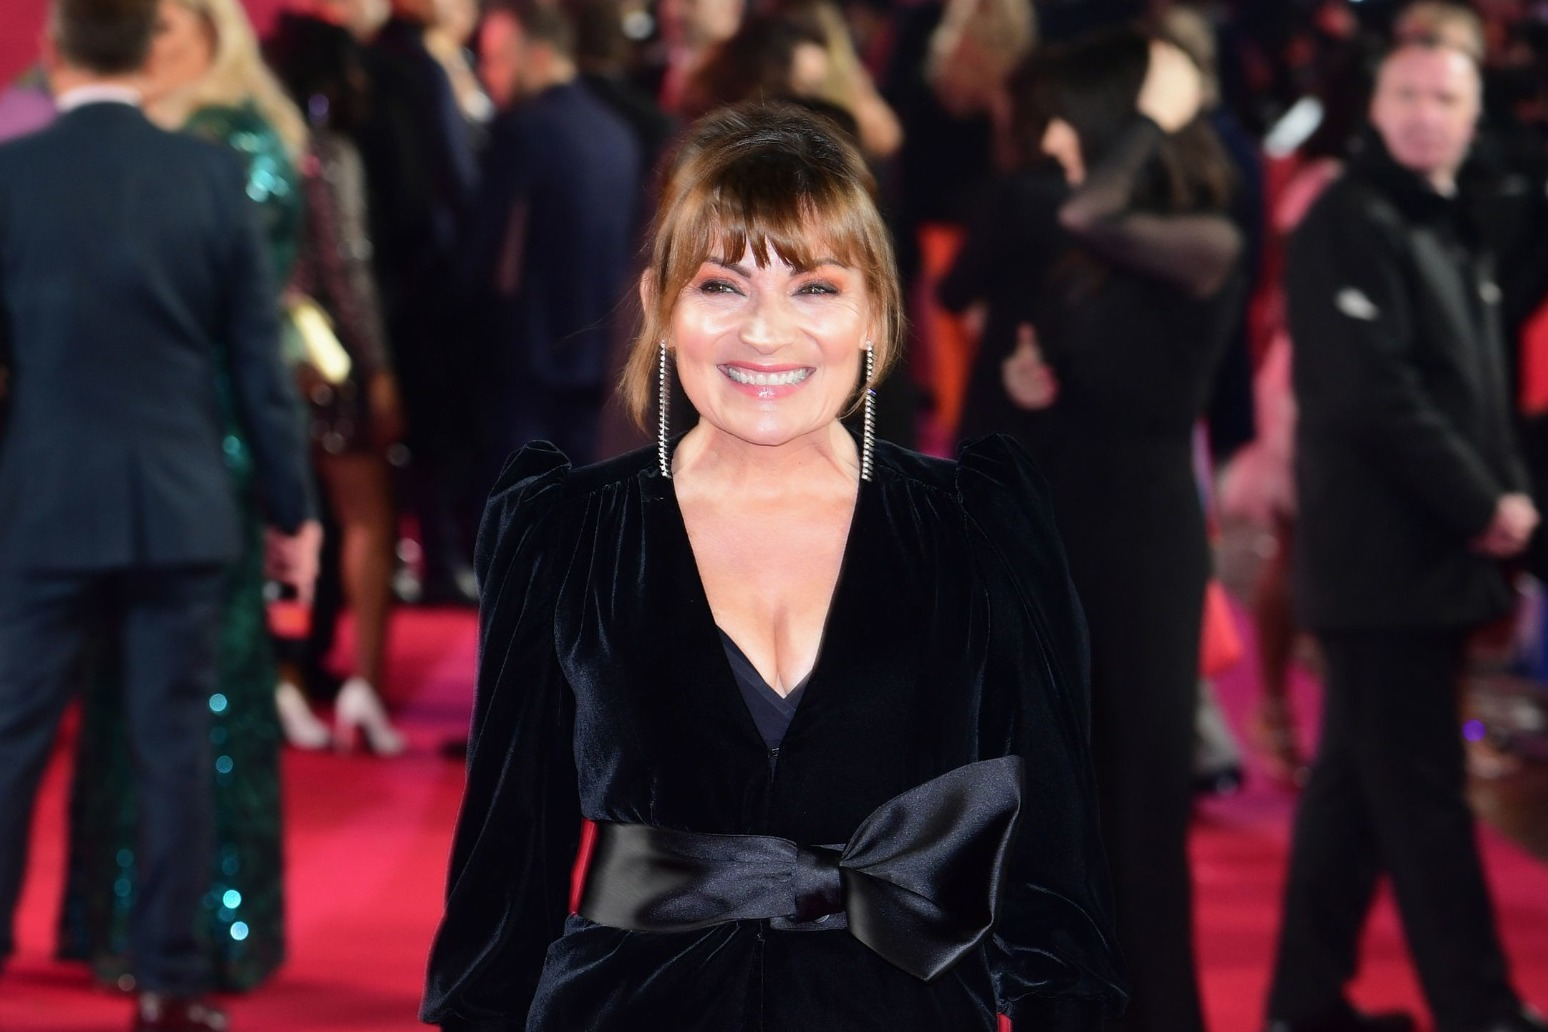 LORRAINE KELLY: THIS IS A TOXIC POLITICAL ATMOSPHERE FOR WOMEN